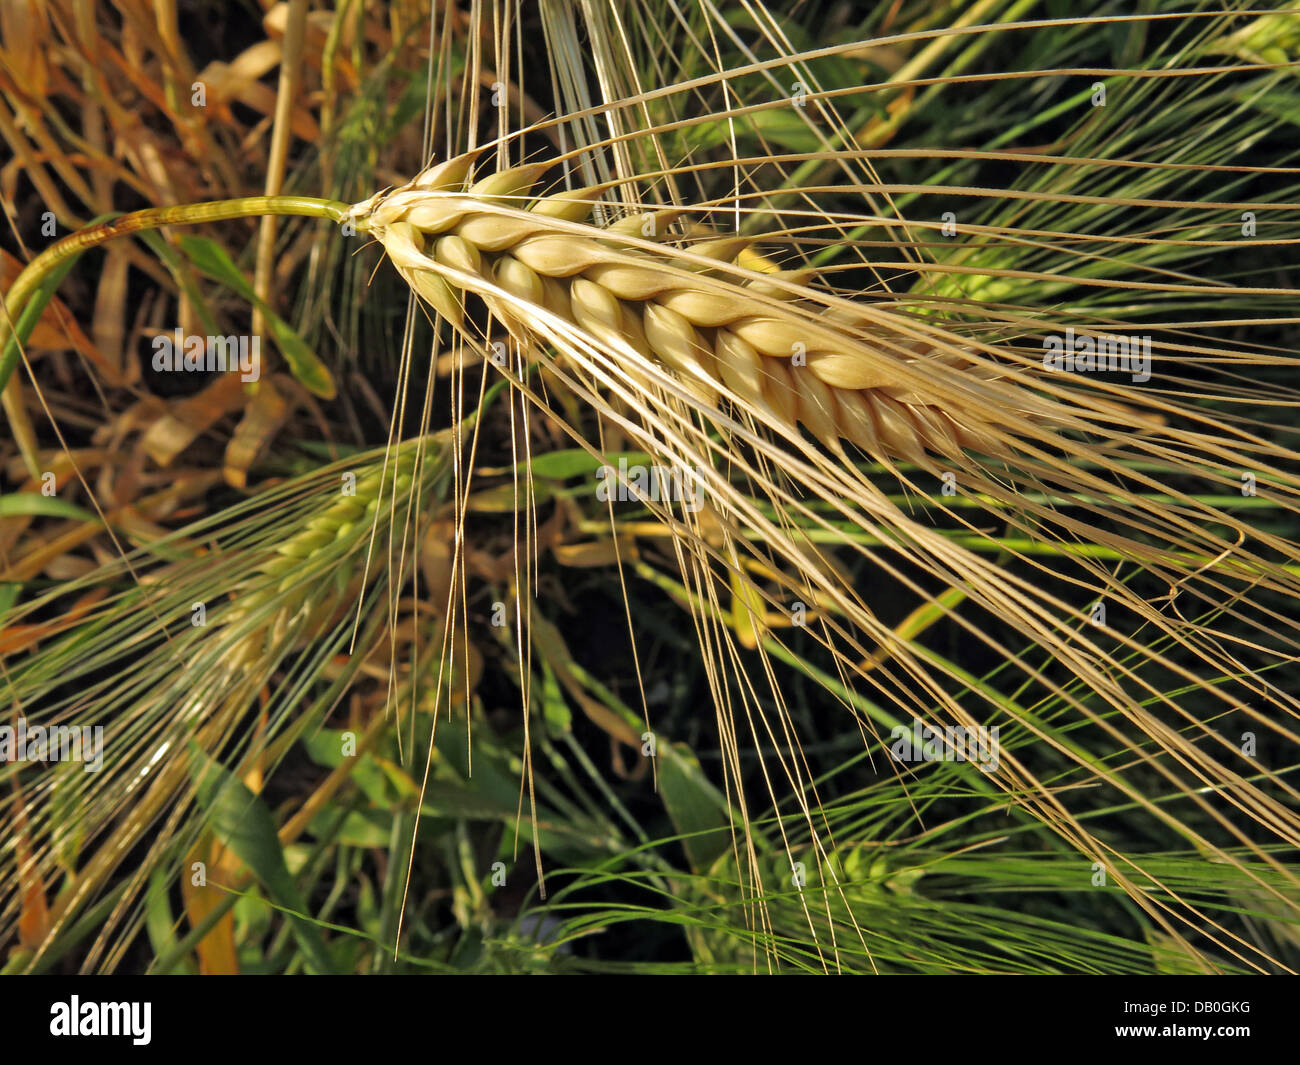 Wheat in a field ready for harvest in Grappenhall, Cheshire, NW England, UK - Stock Image